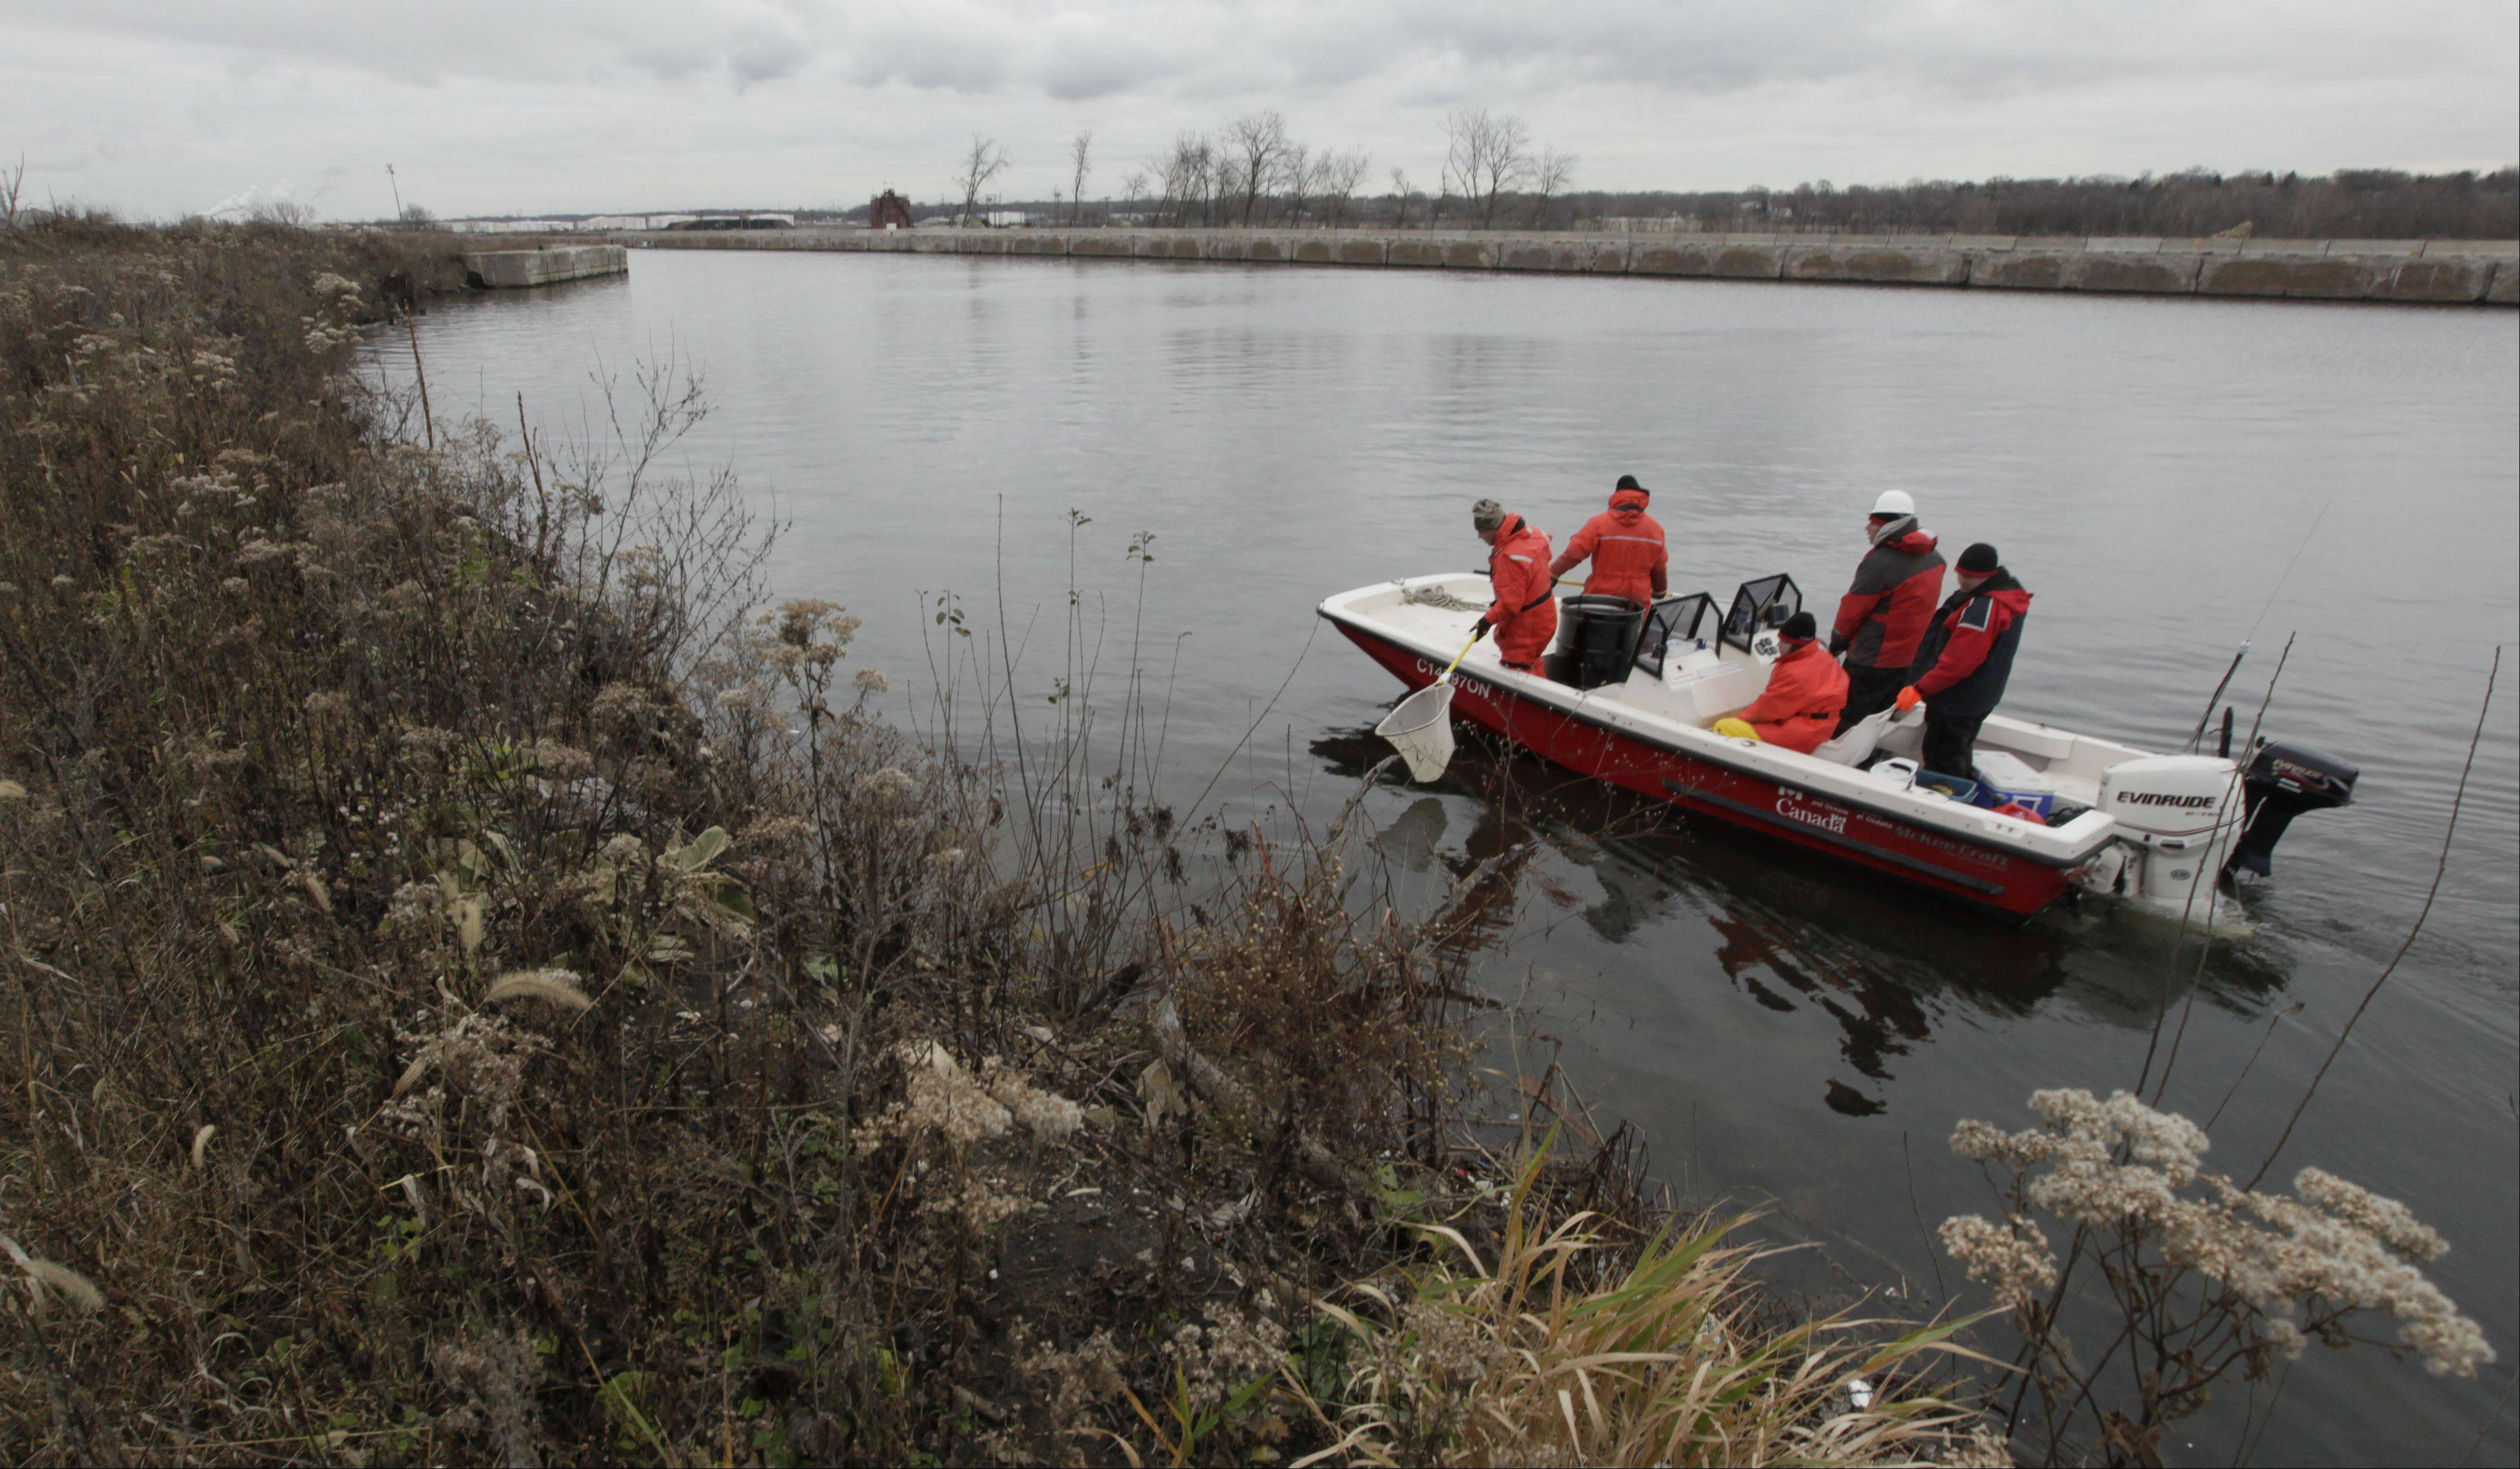 Crews search for Asian carp in the Chicago Sanitary and Ship Canal in Lockport, Ill.